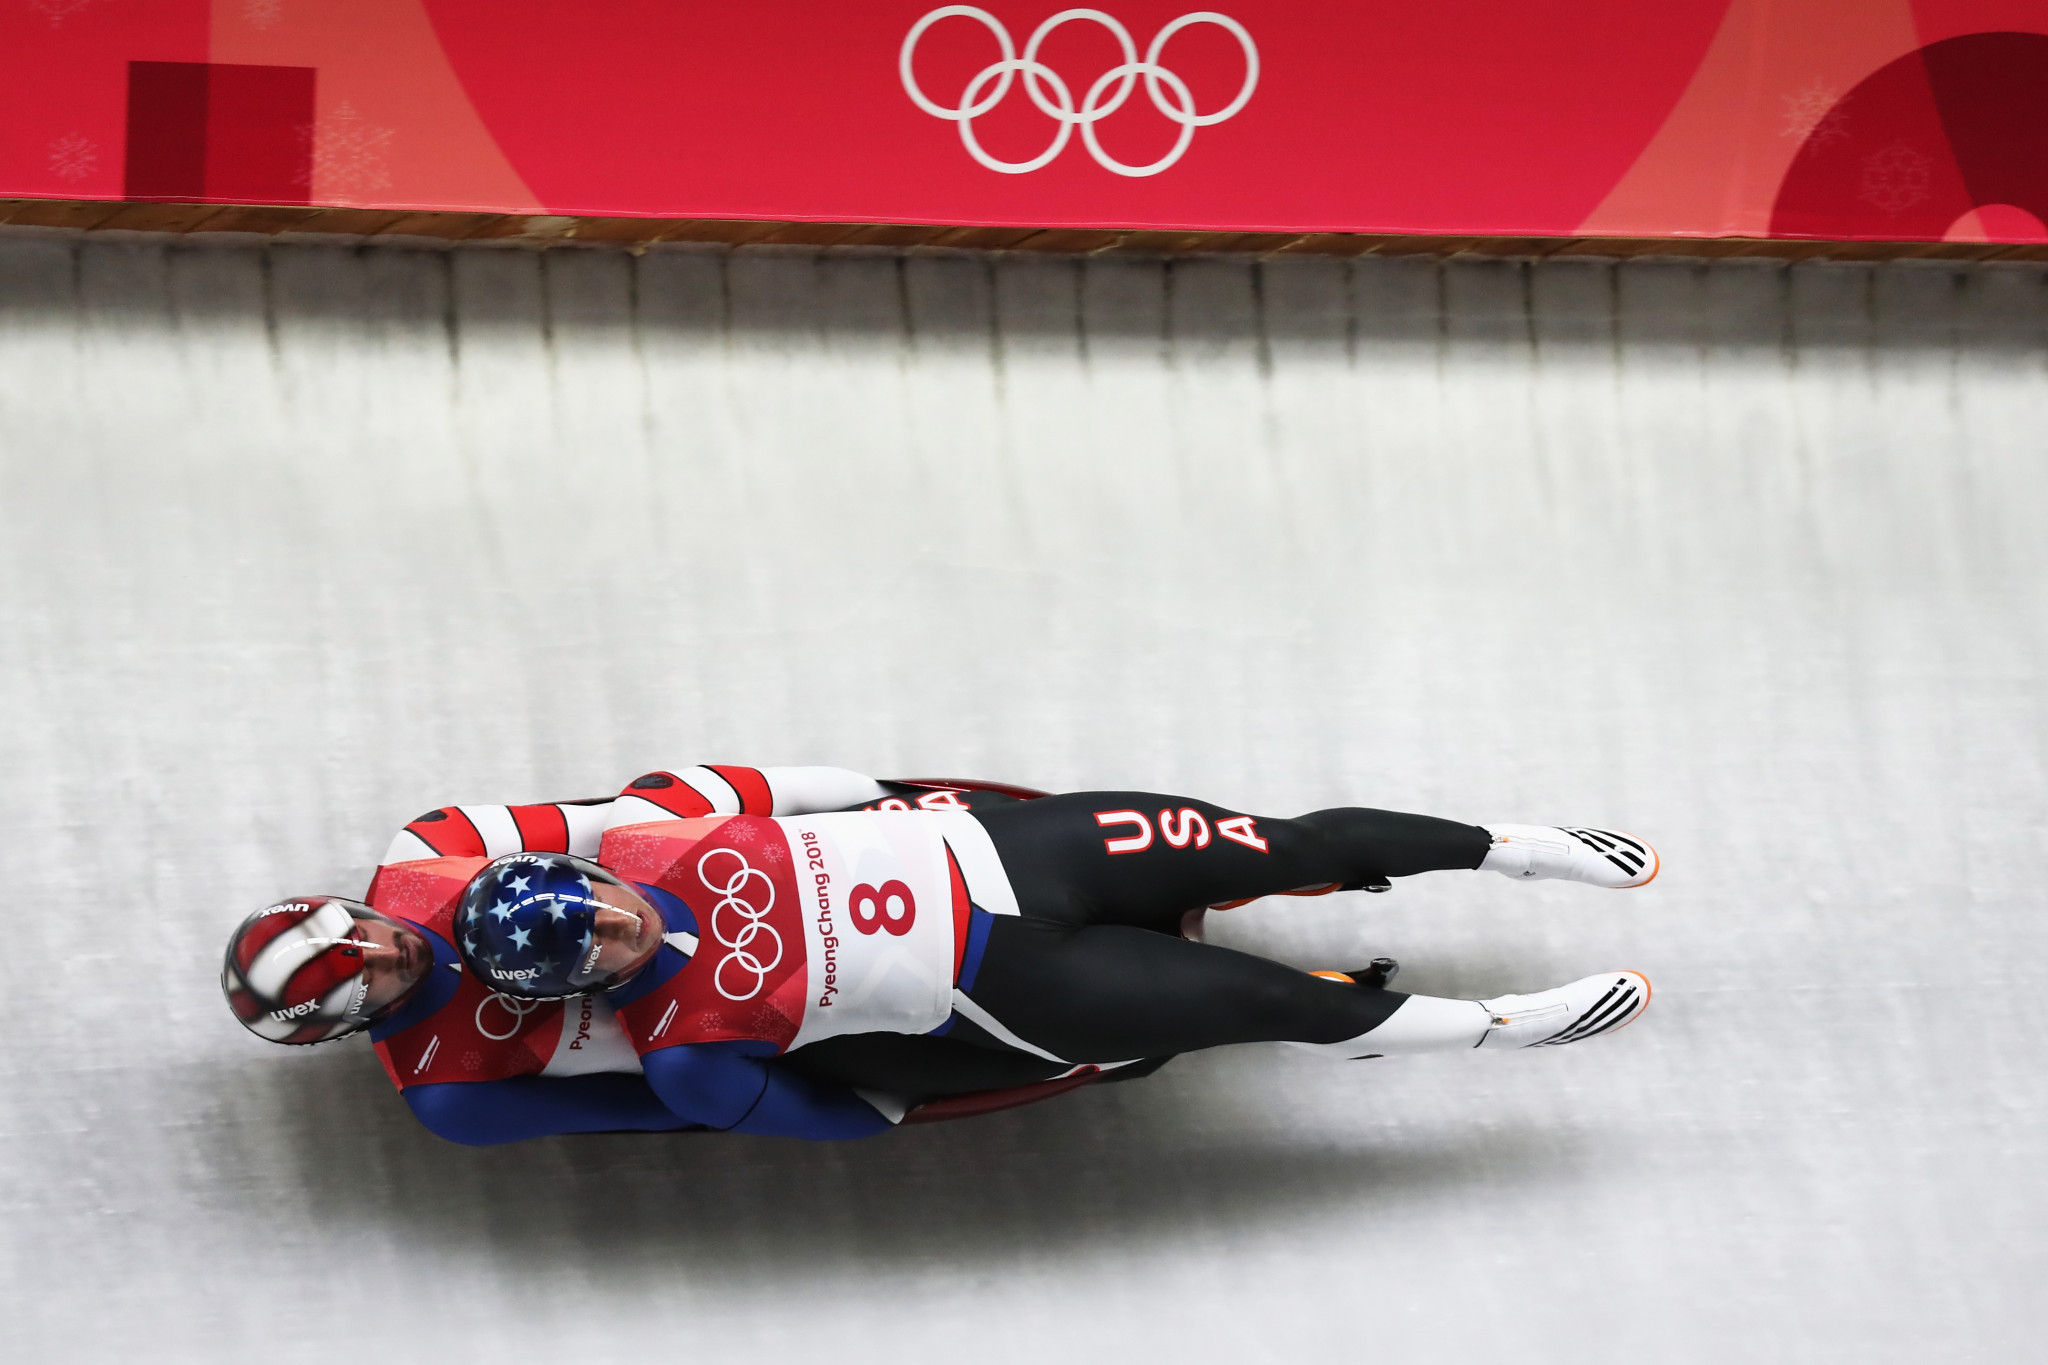 USA Luge build new look team for 2018-2019 season after top performers retire